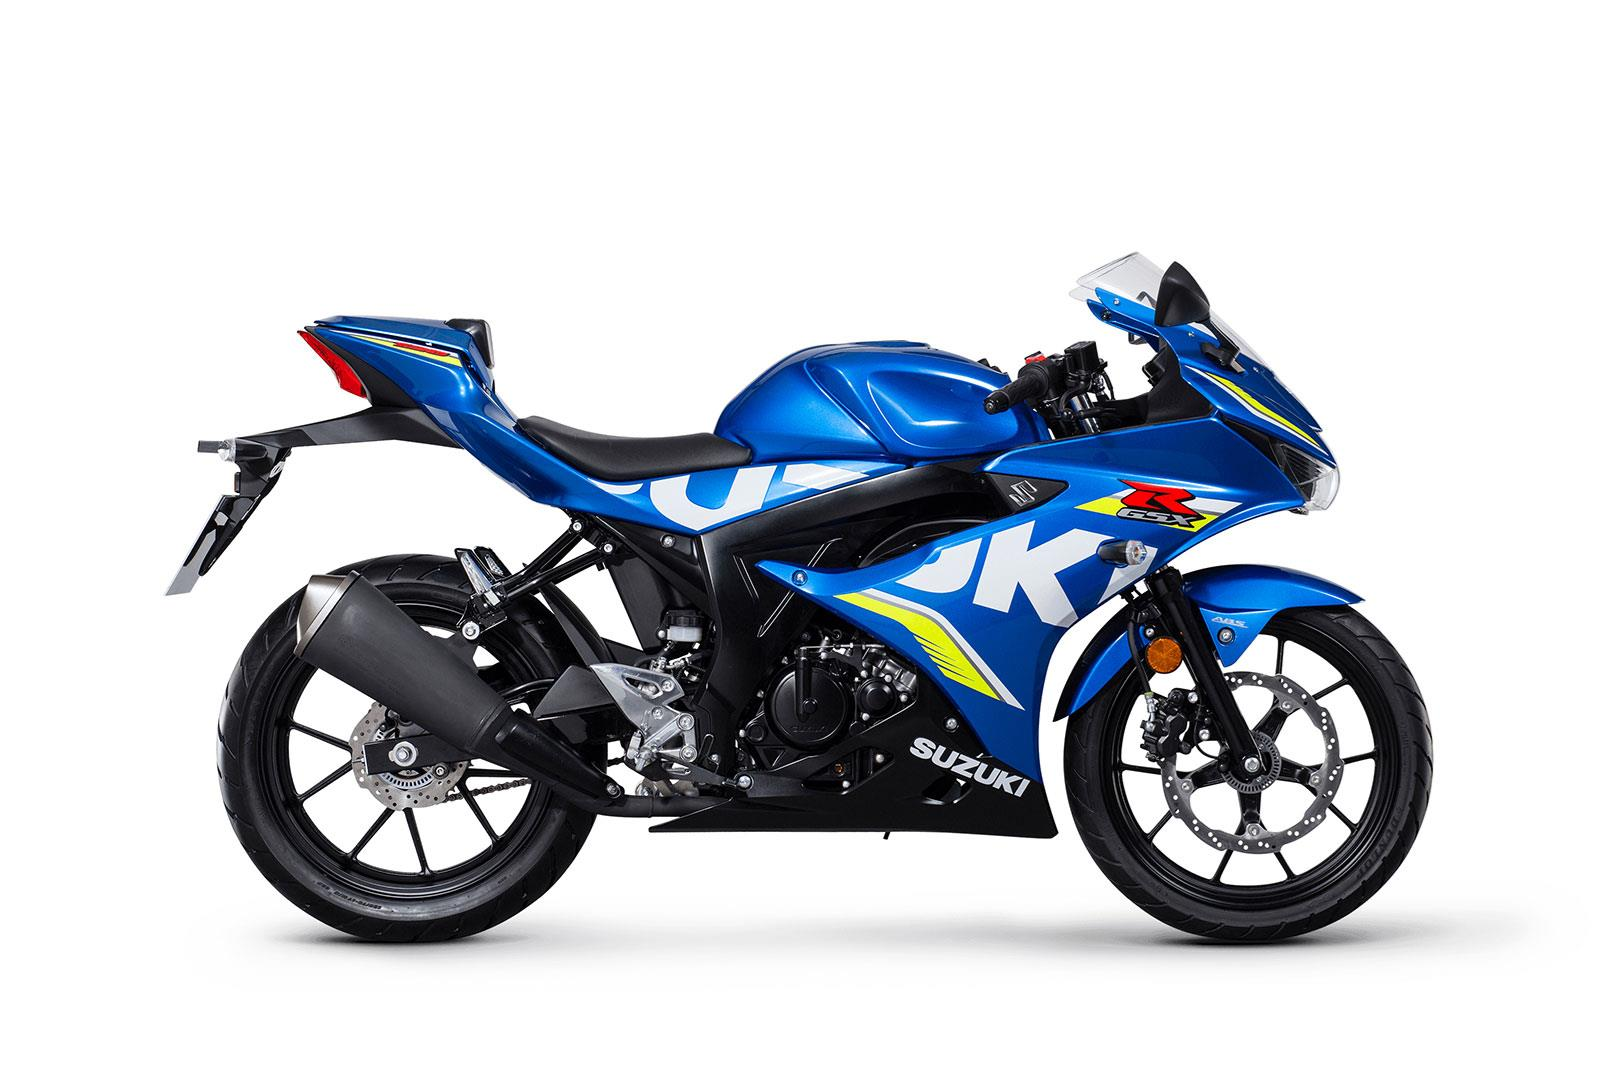 suzuki gsx r125 and gsx s125 pricing confirmed mcn. Black Bedroom Furniture Sets. Home Design Ideas